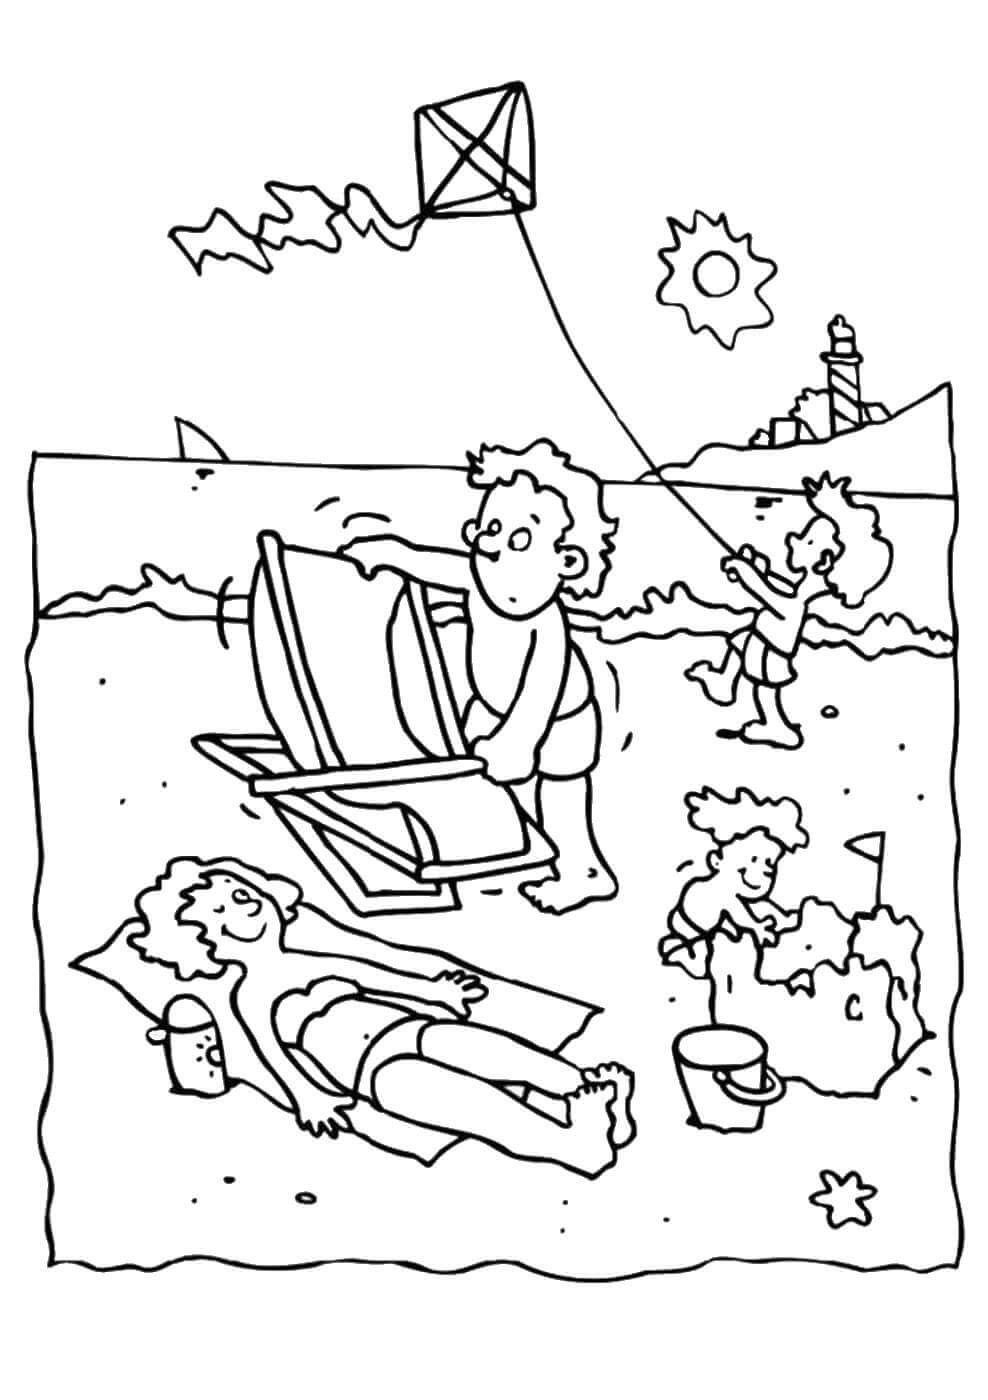 Beach Coloring Pages For Adults Printable Coloring Pages Printable